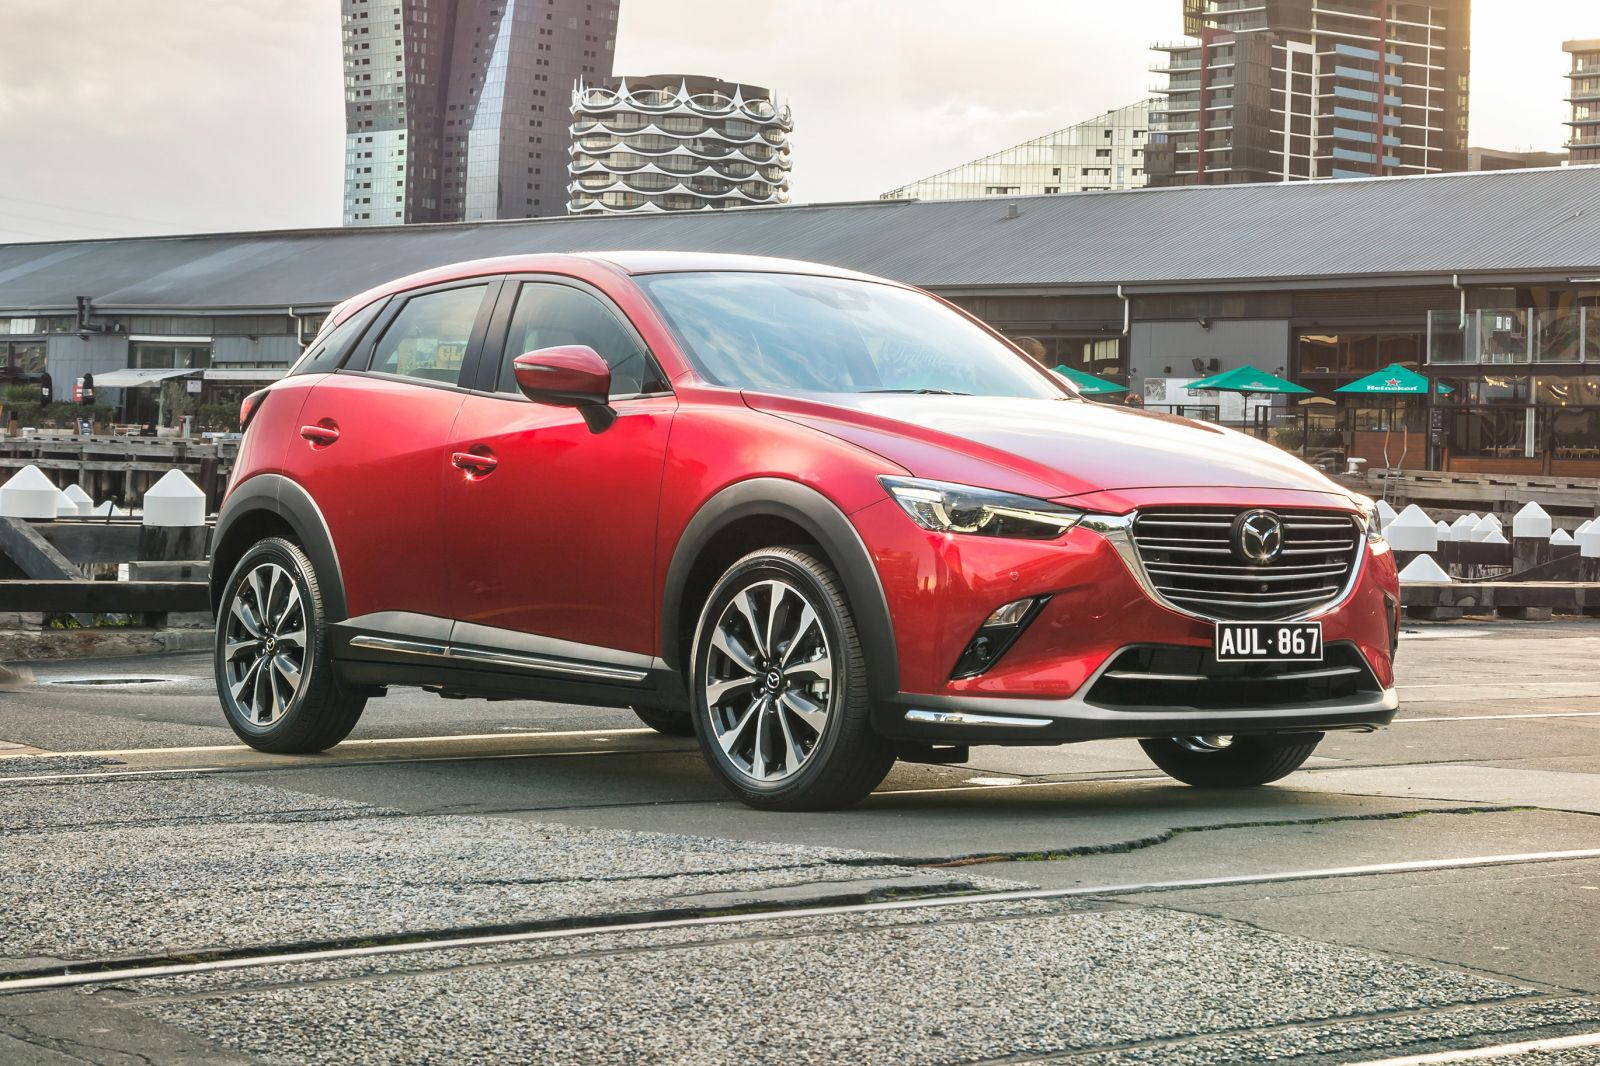 Mazda updates two of its SUV's for 2021